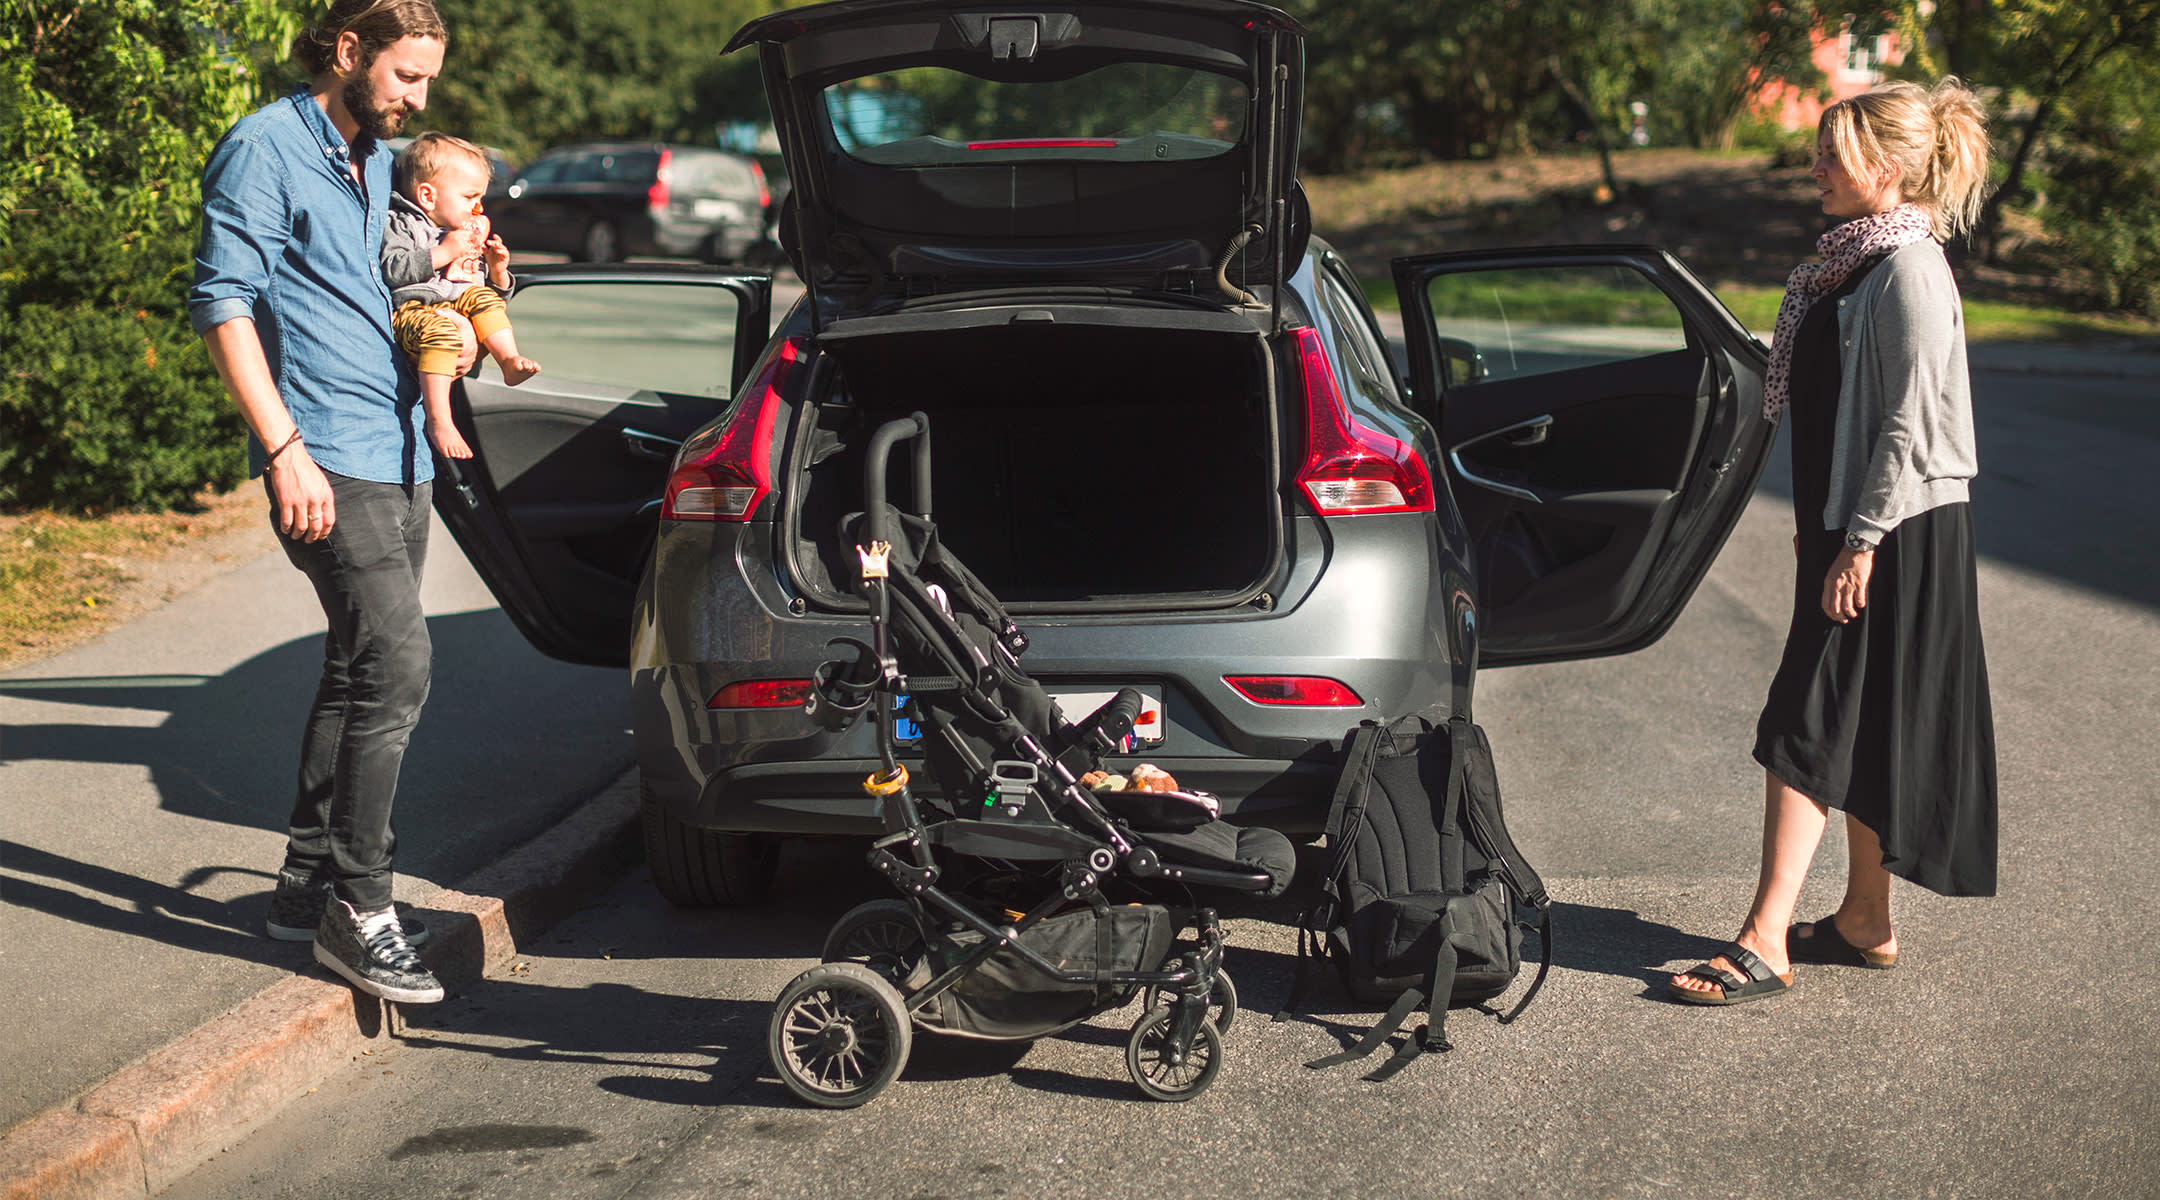 parents getting ready to put baby and stroller in their car